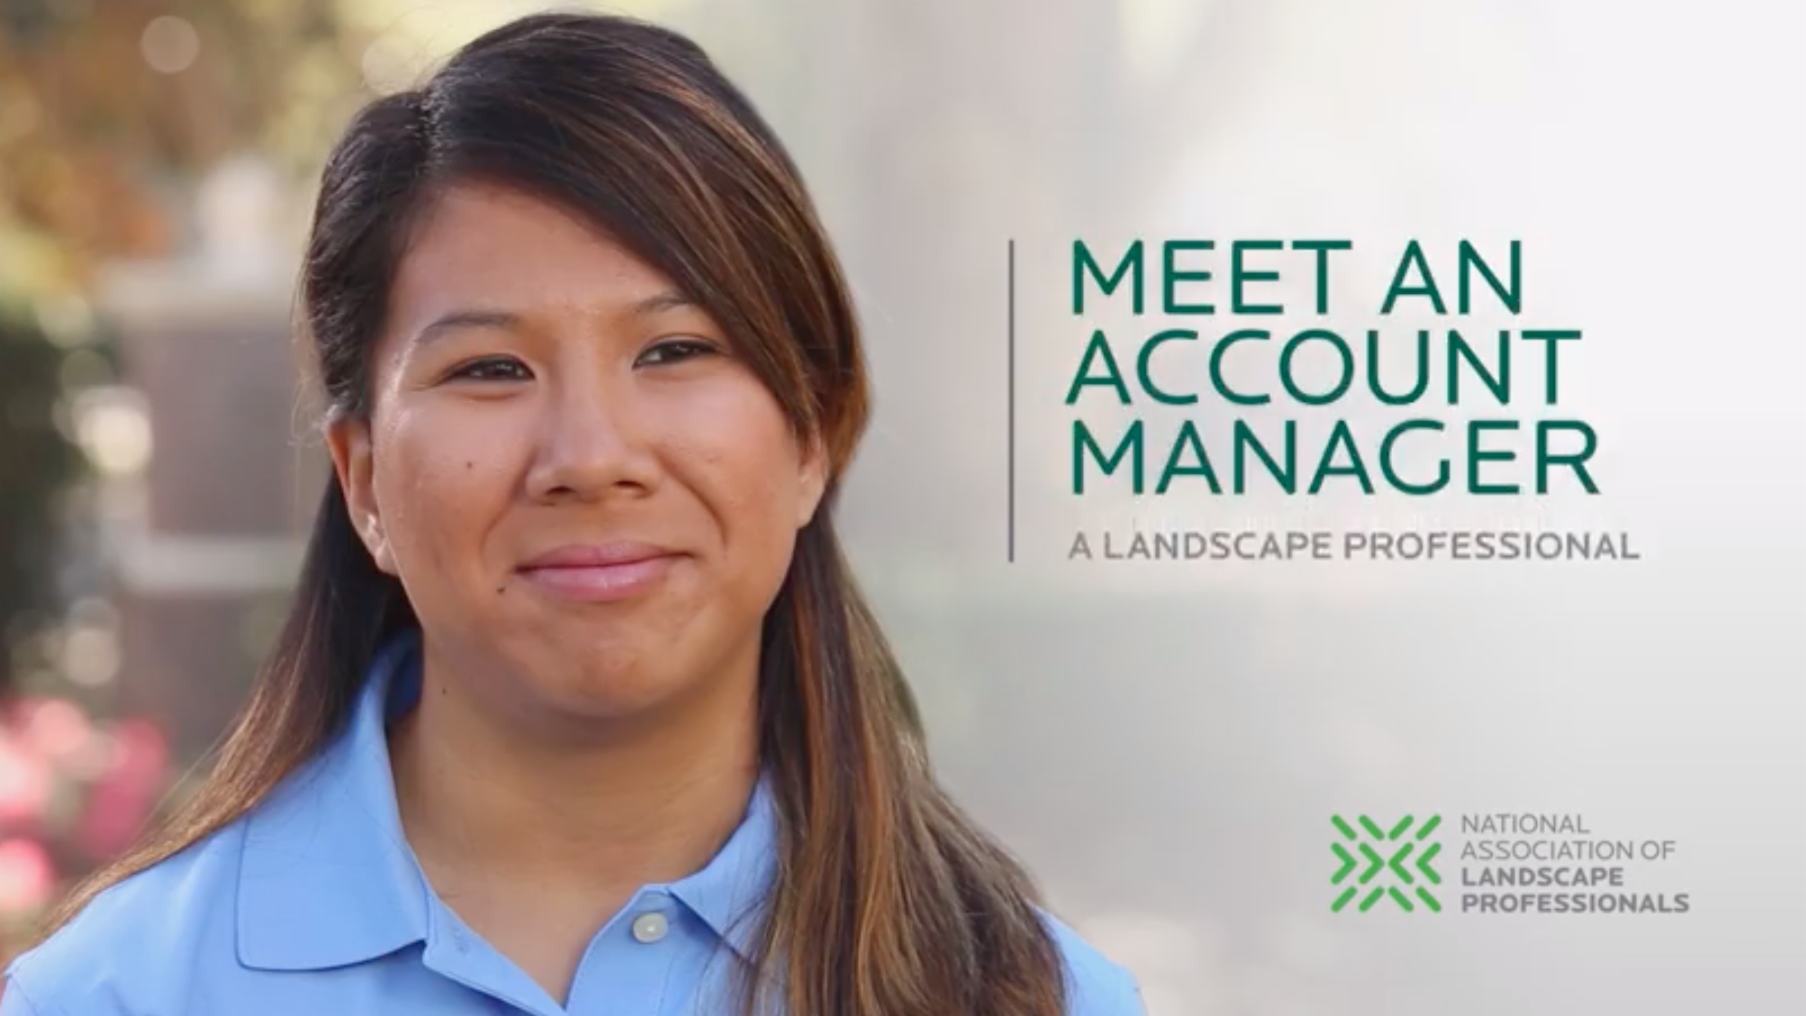 Meet an Account Manager - Landscape Industry Testimonial Videos